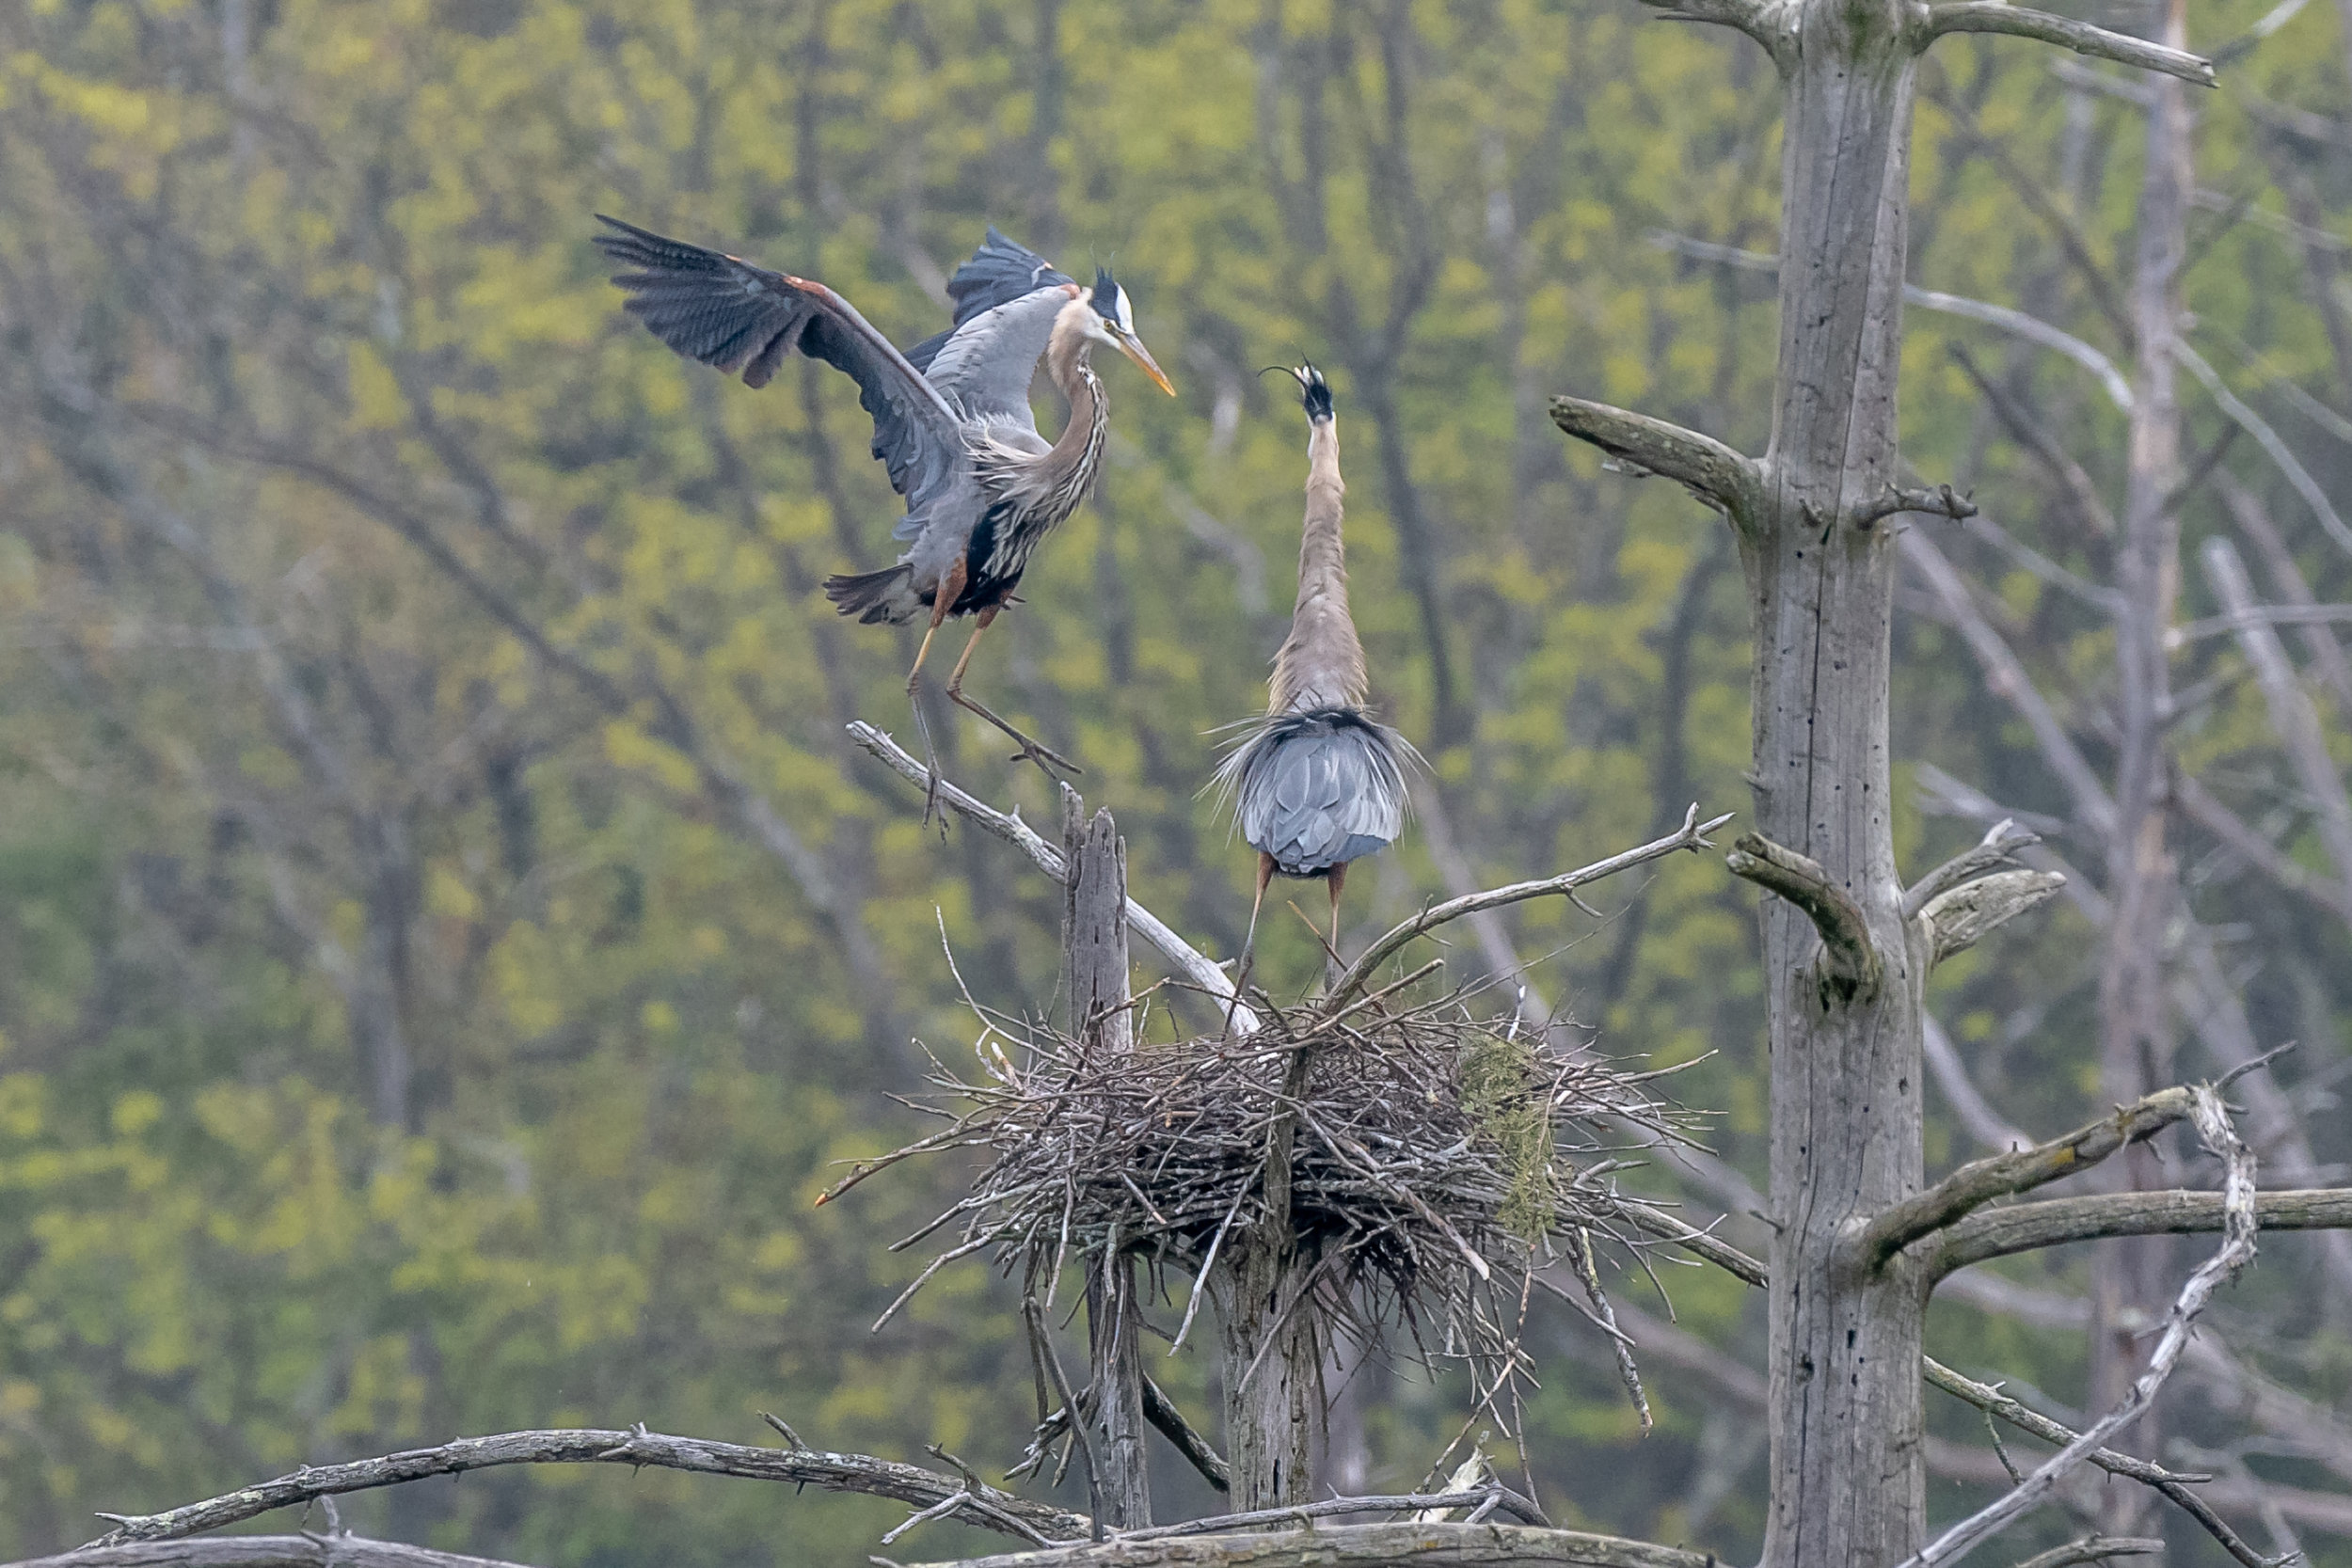 I watched these herons build and take care of three chicks this spring starting when they arrived back in late March. Here they are working on the nest .